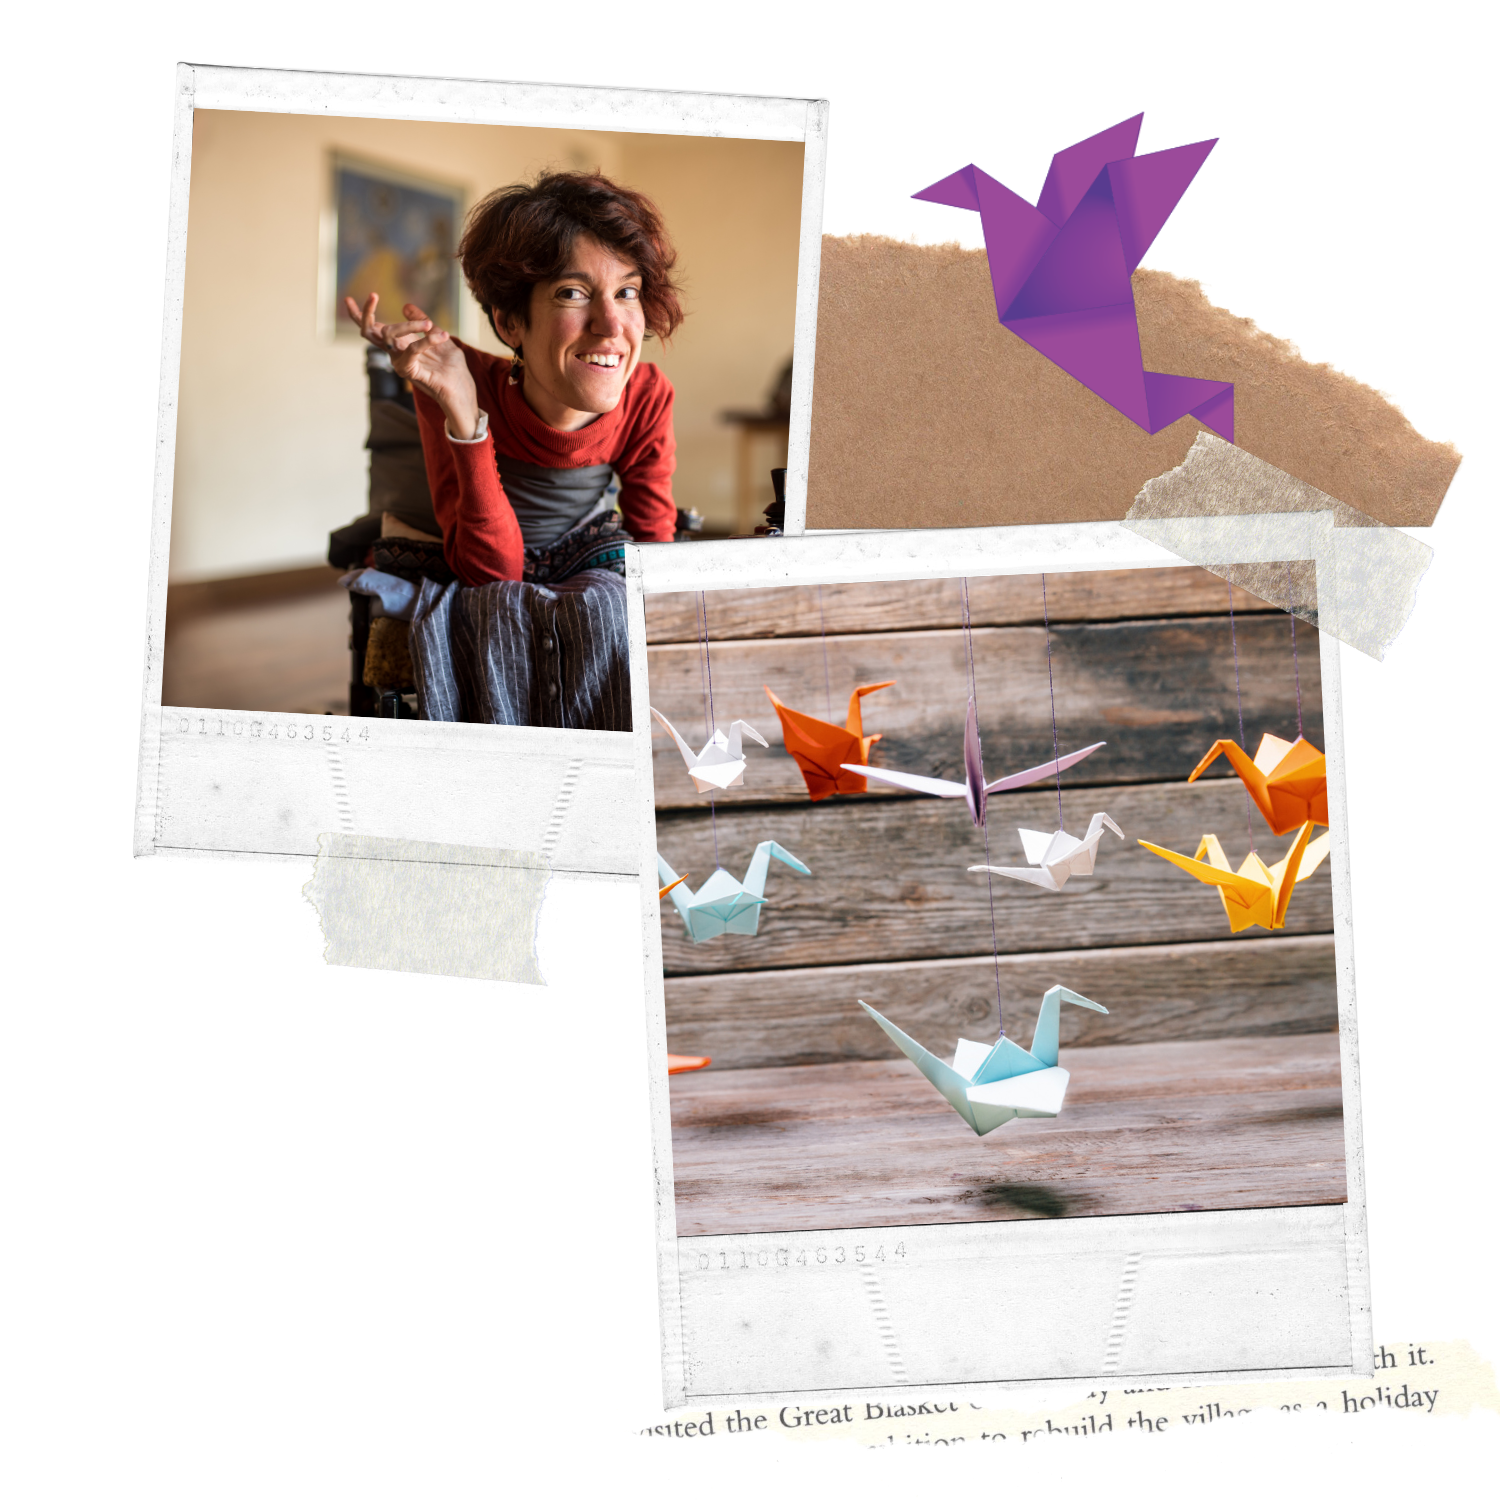 Collage Image showing hanging colourful Paper Cranes and a women in a wheelchair smiling and being happy